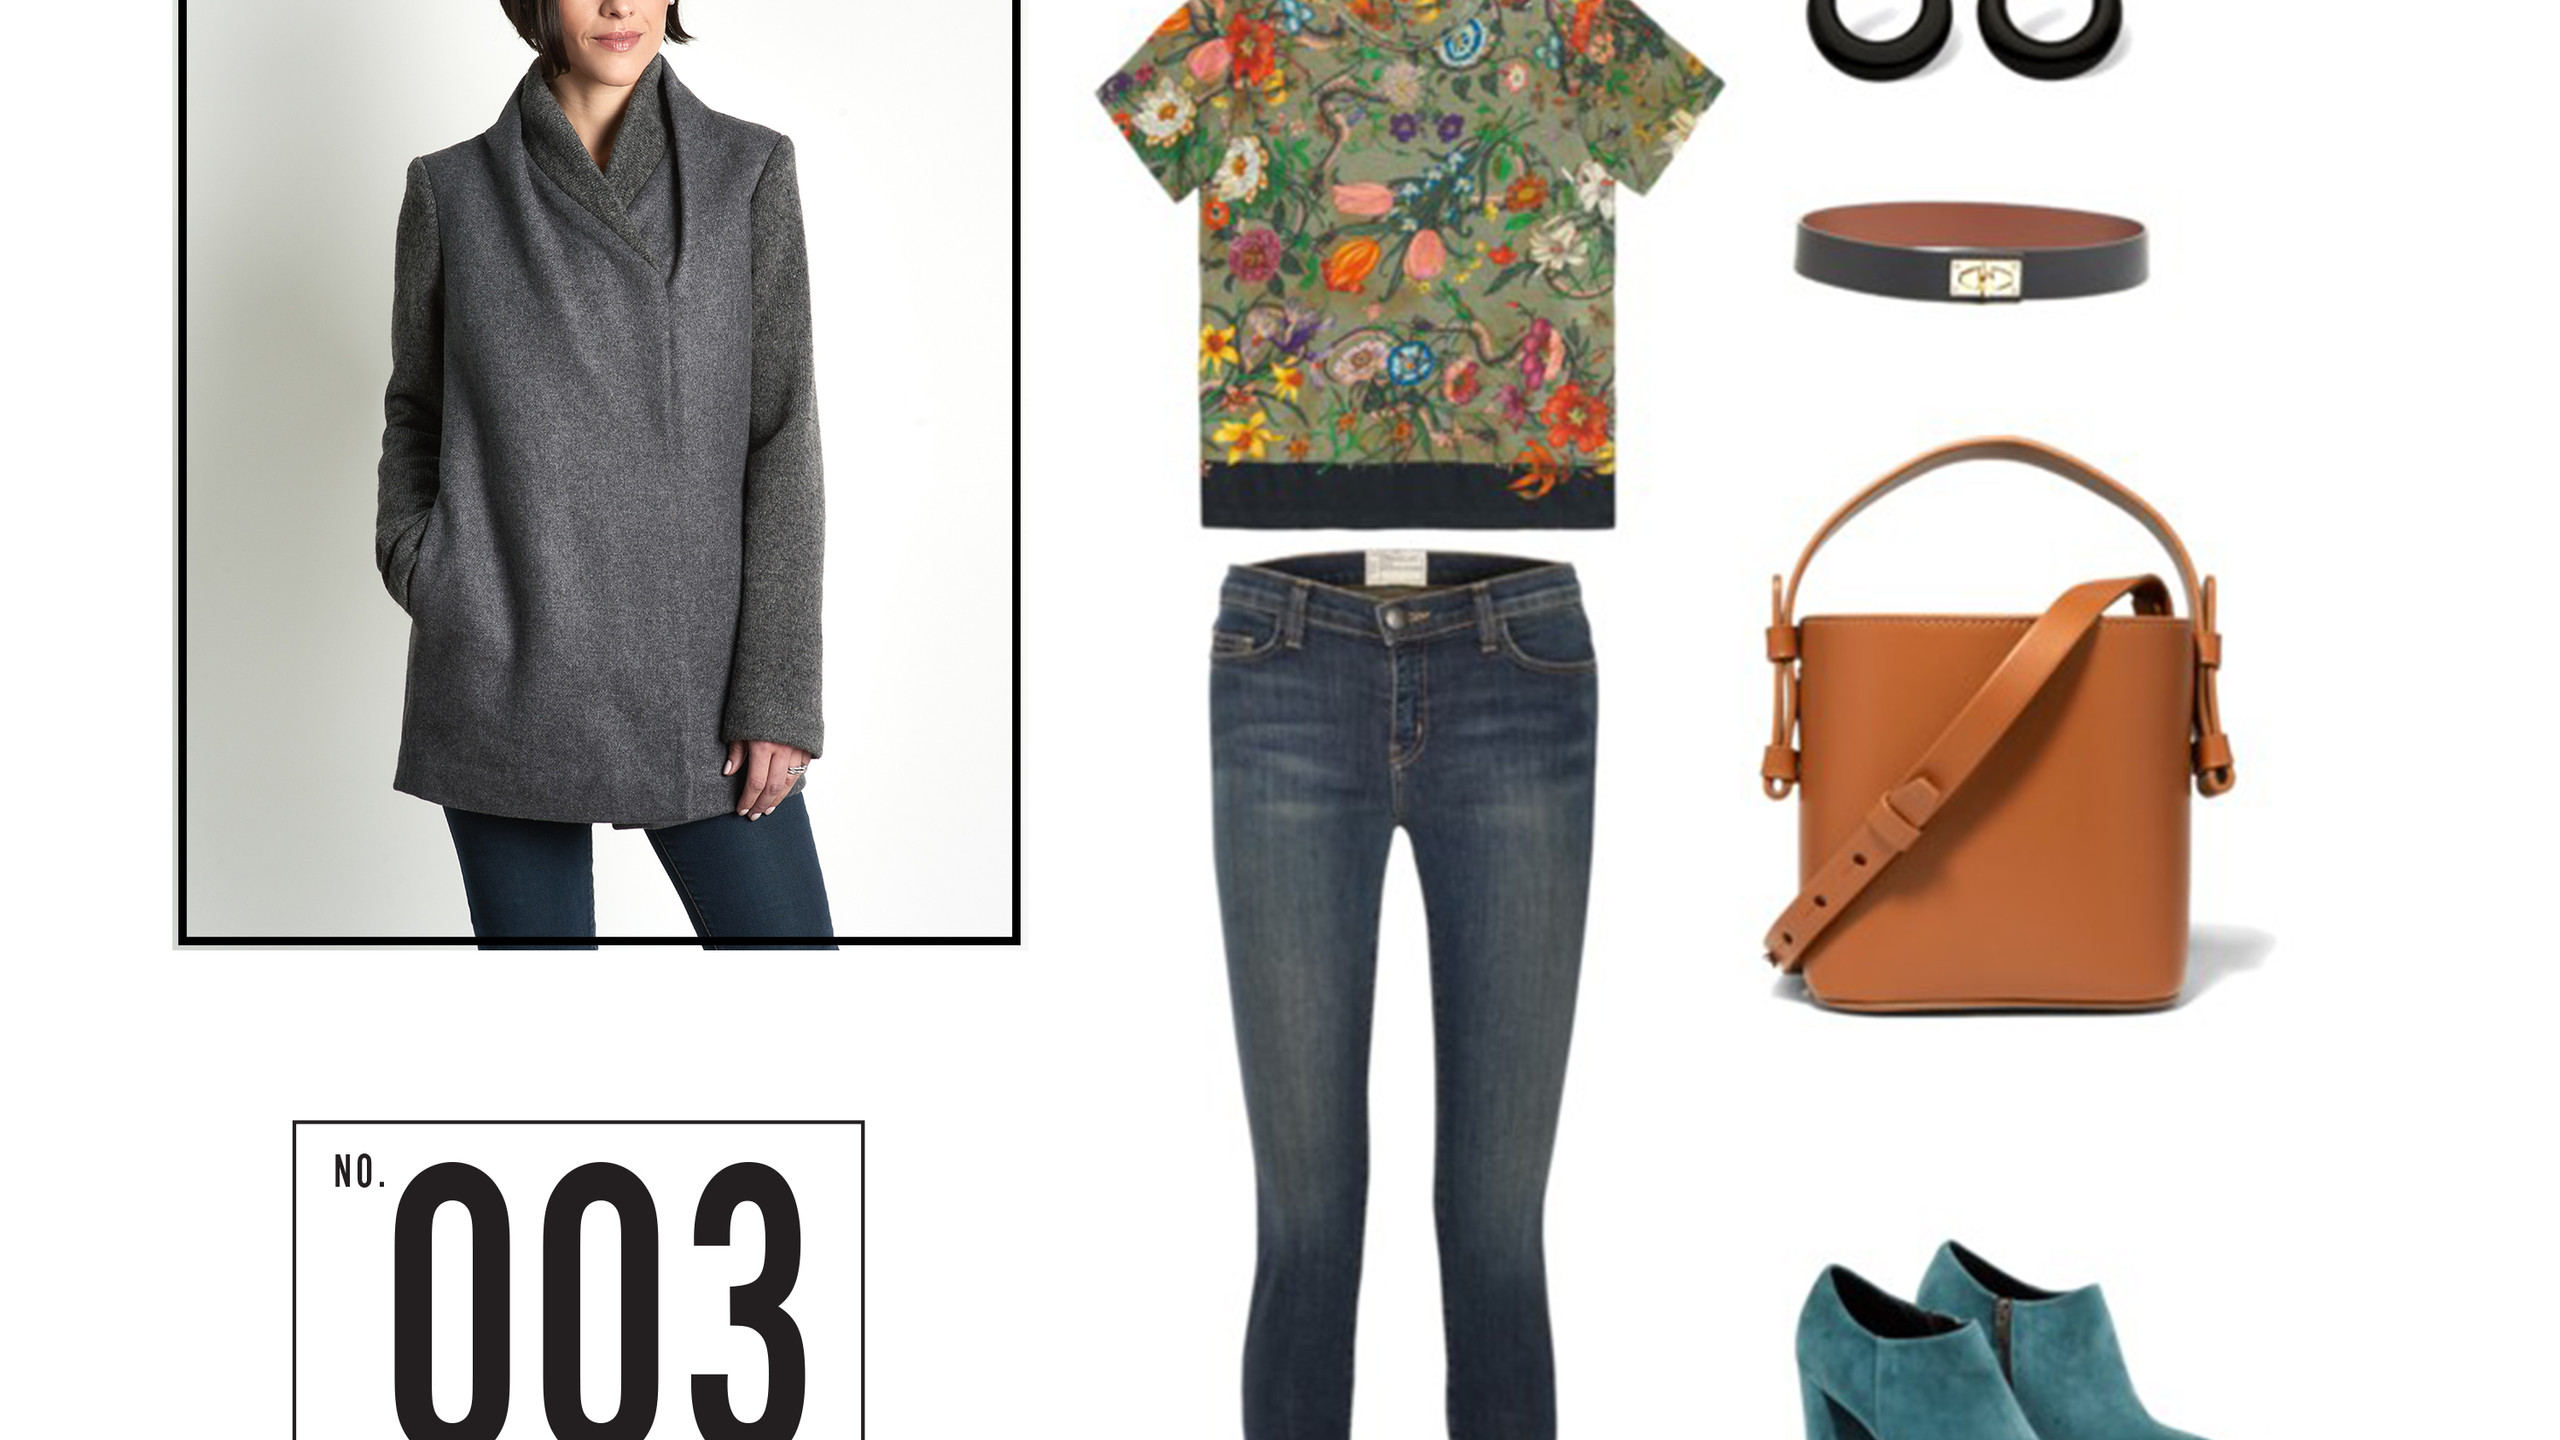 Wear it over your favorite dazzle tee, skinny jeans and booties